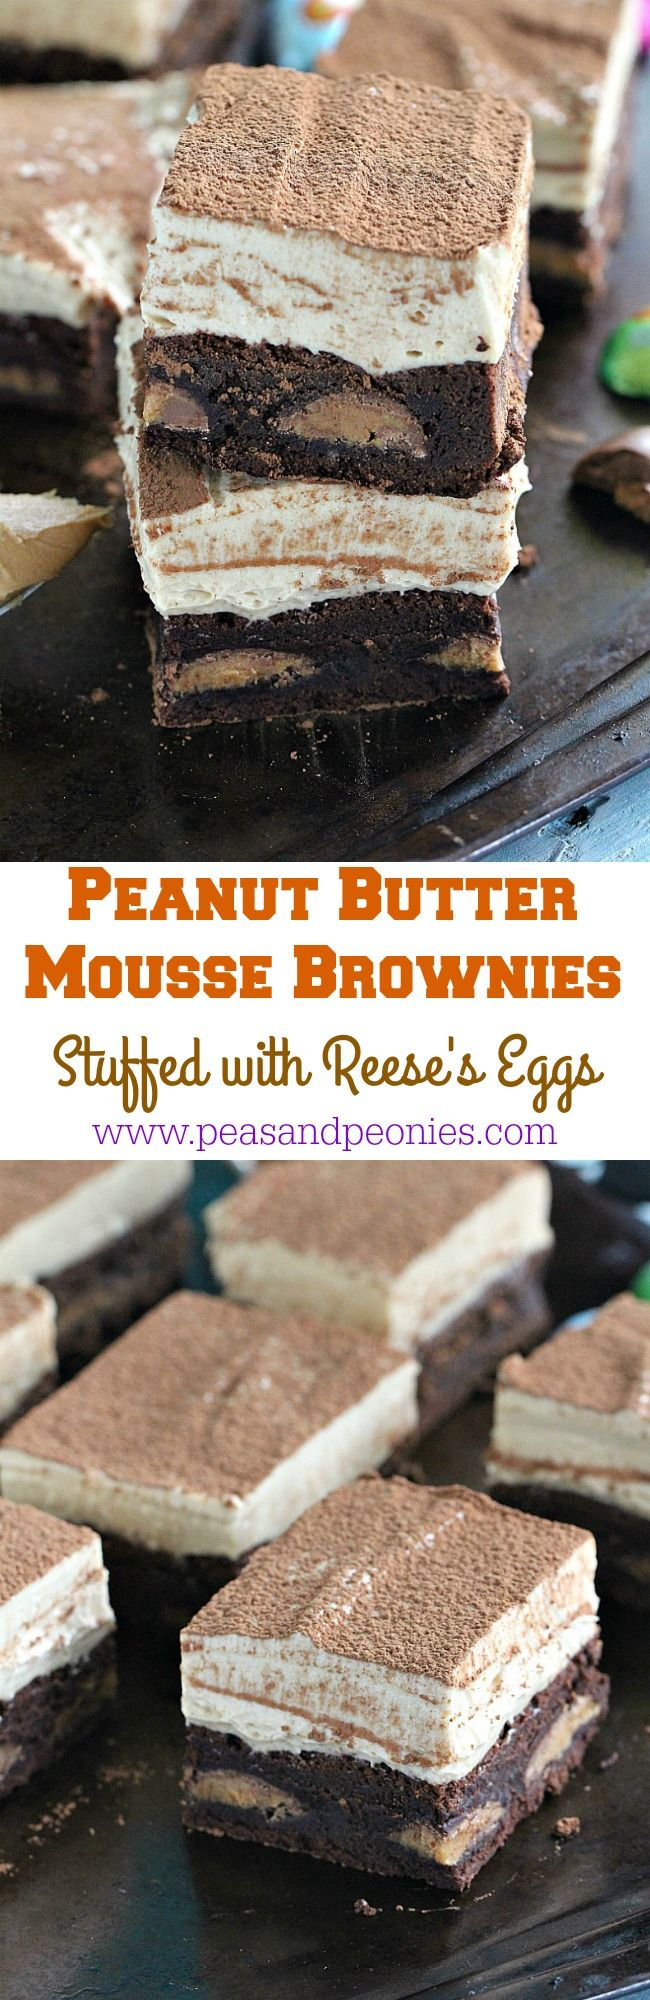 Chocolaty Peanut Butter Mousse Brownies are stuffed with Reese's Peanut Butter Eggs and topped with a creamy No Bake Peanut Butter Mousse.